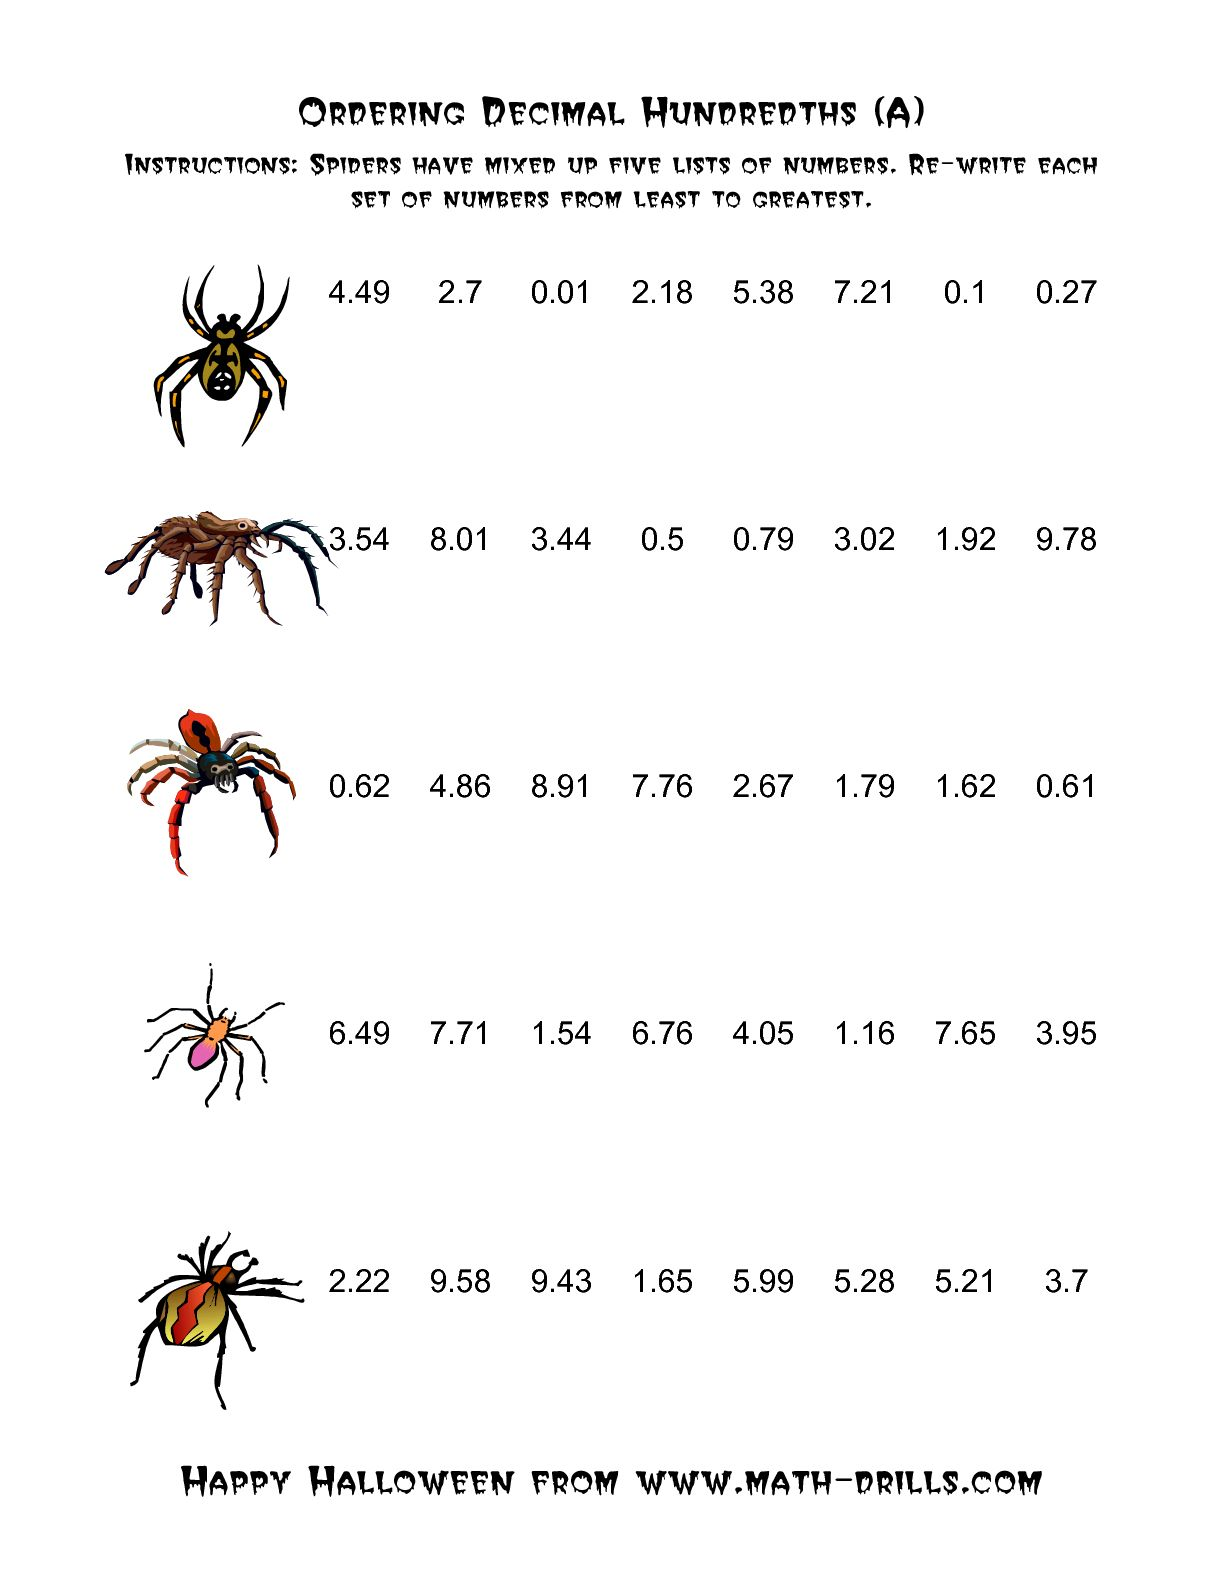 Spiders Ordering Decimal Hundredths A Numbers Worksheet Year 5